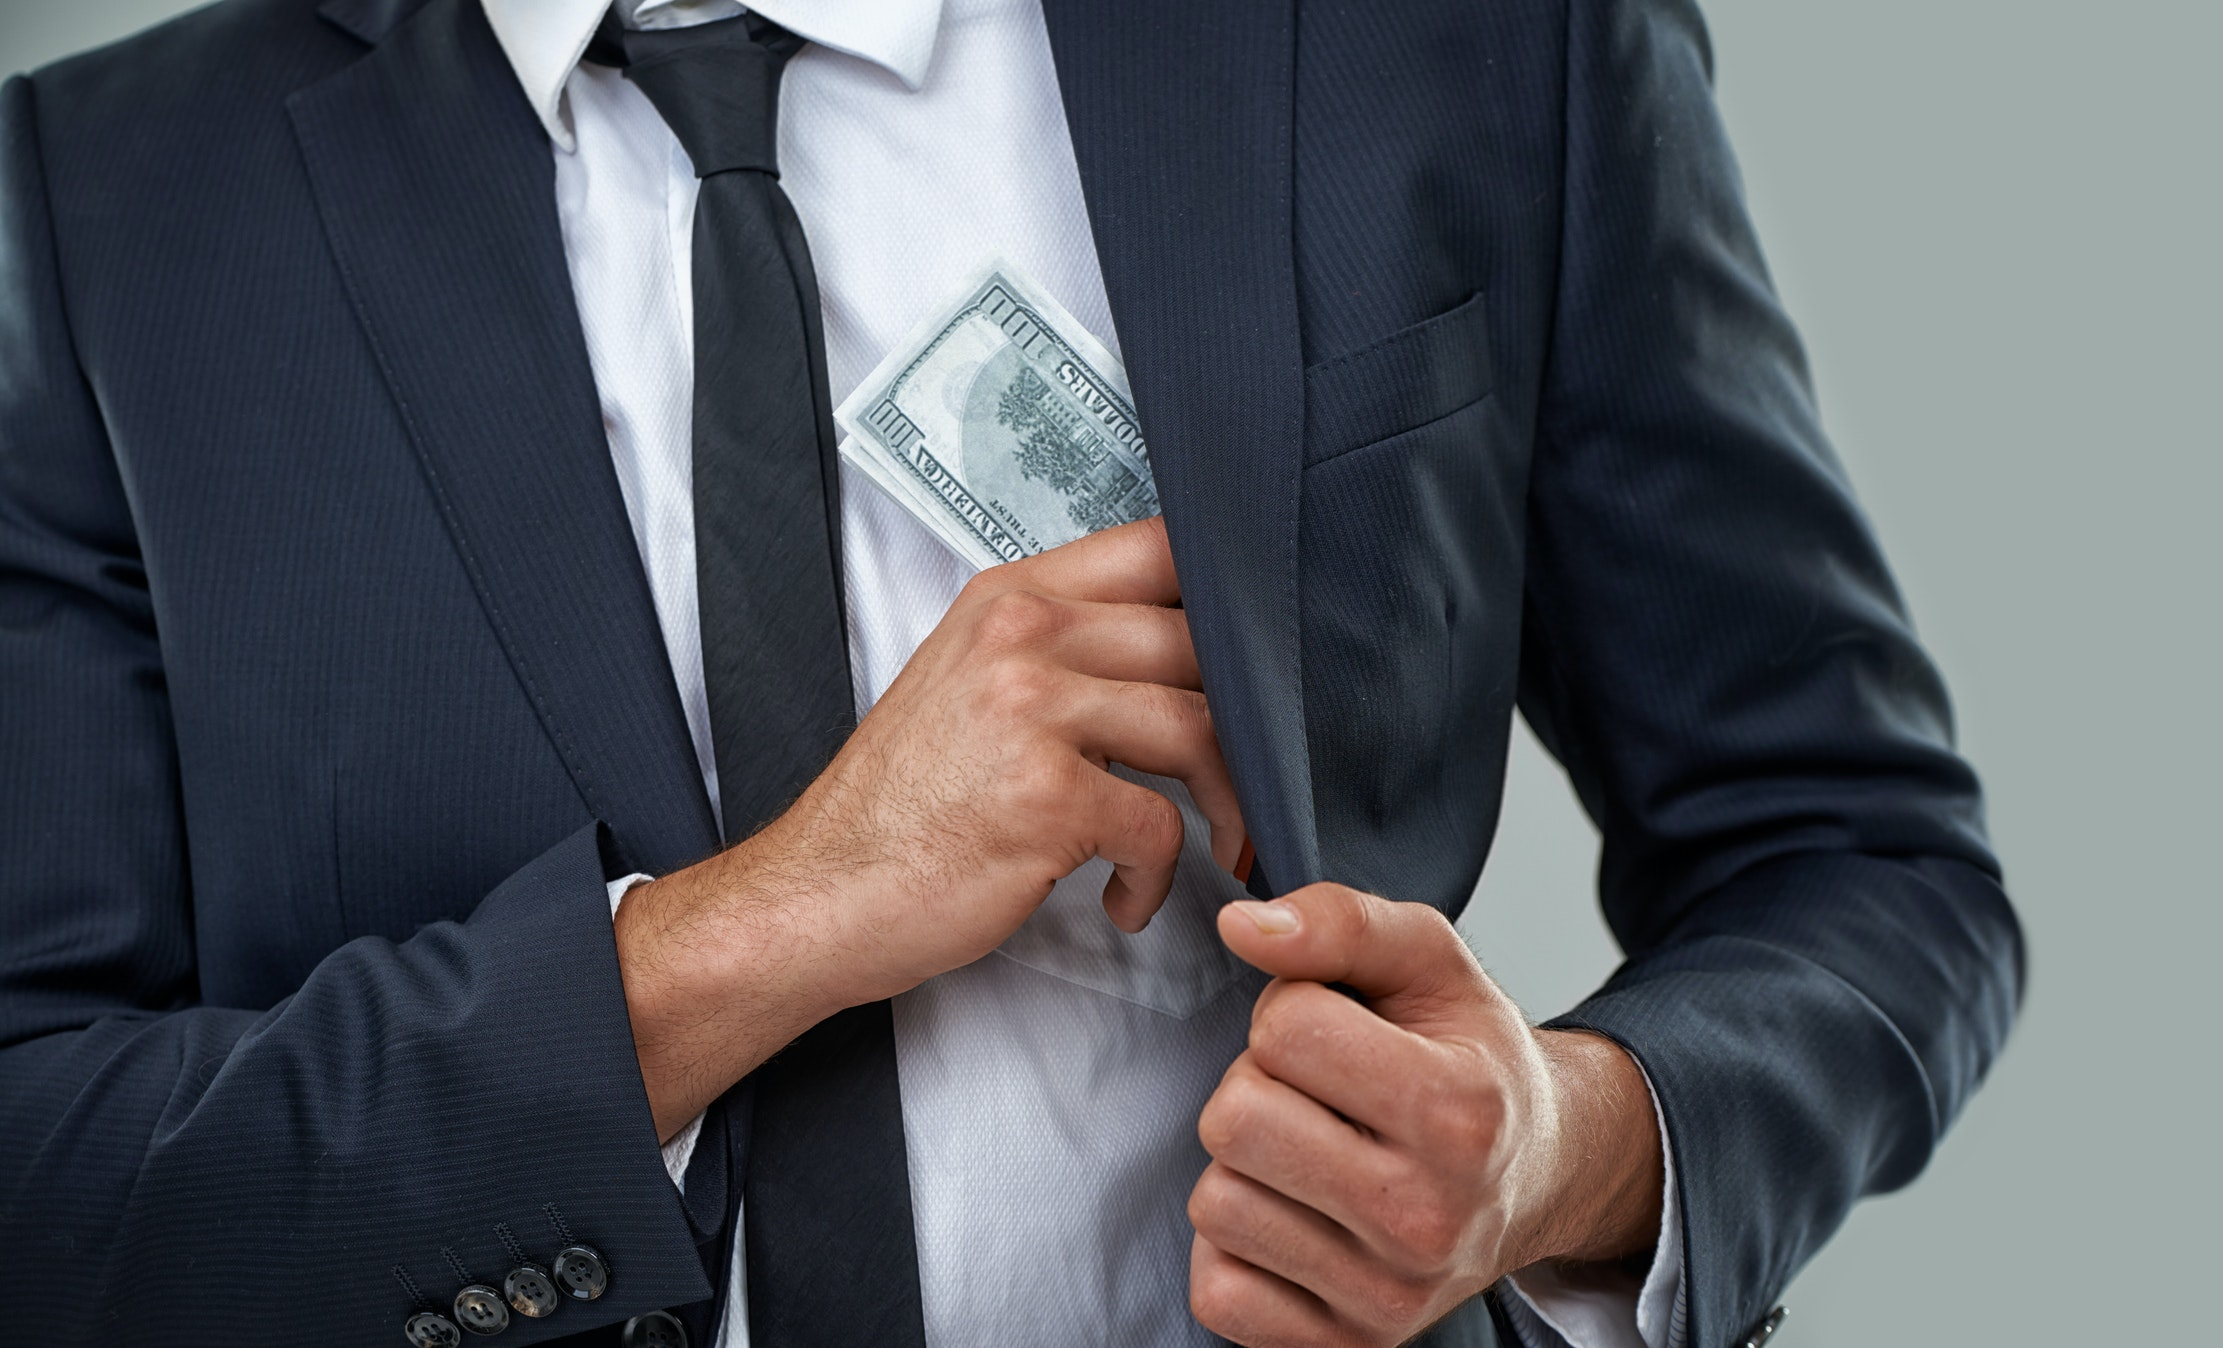 What Makes People Commit Expense Fraud?